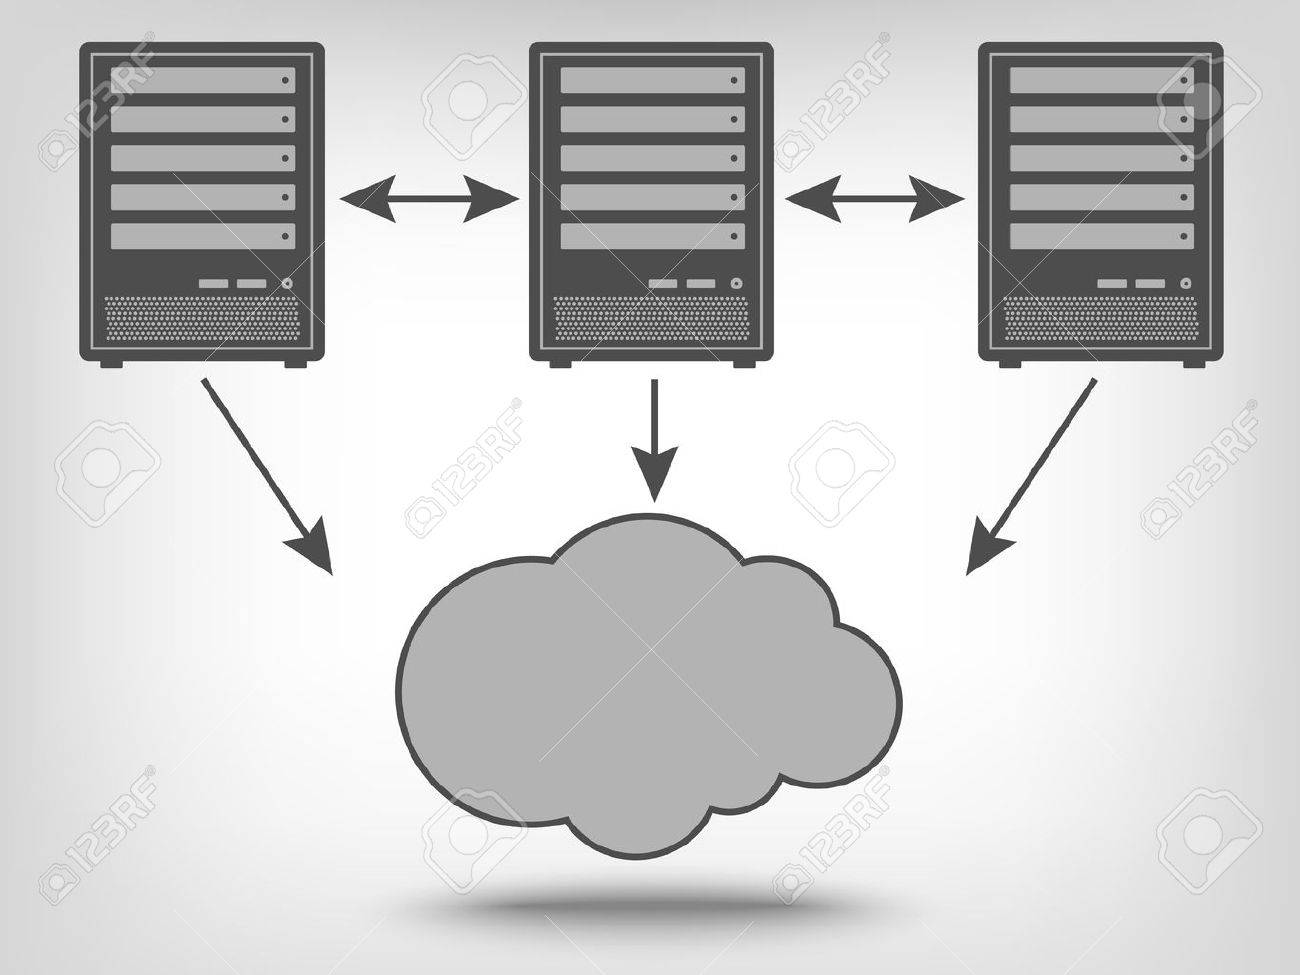 Icon of computer servers and cloud computing as a concept - 42003986